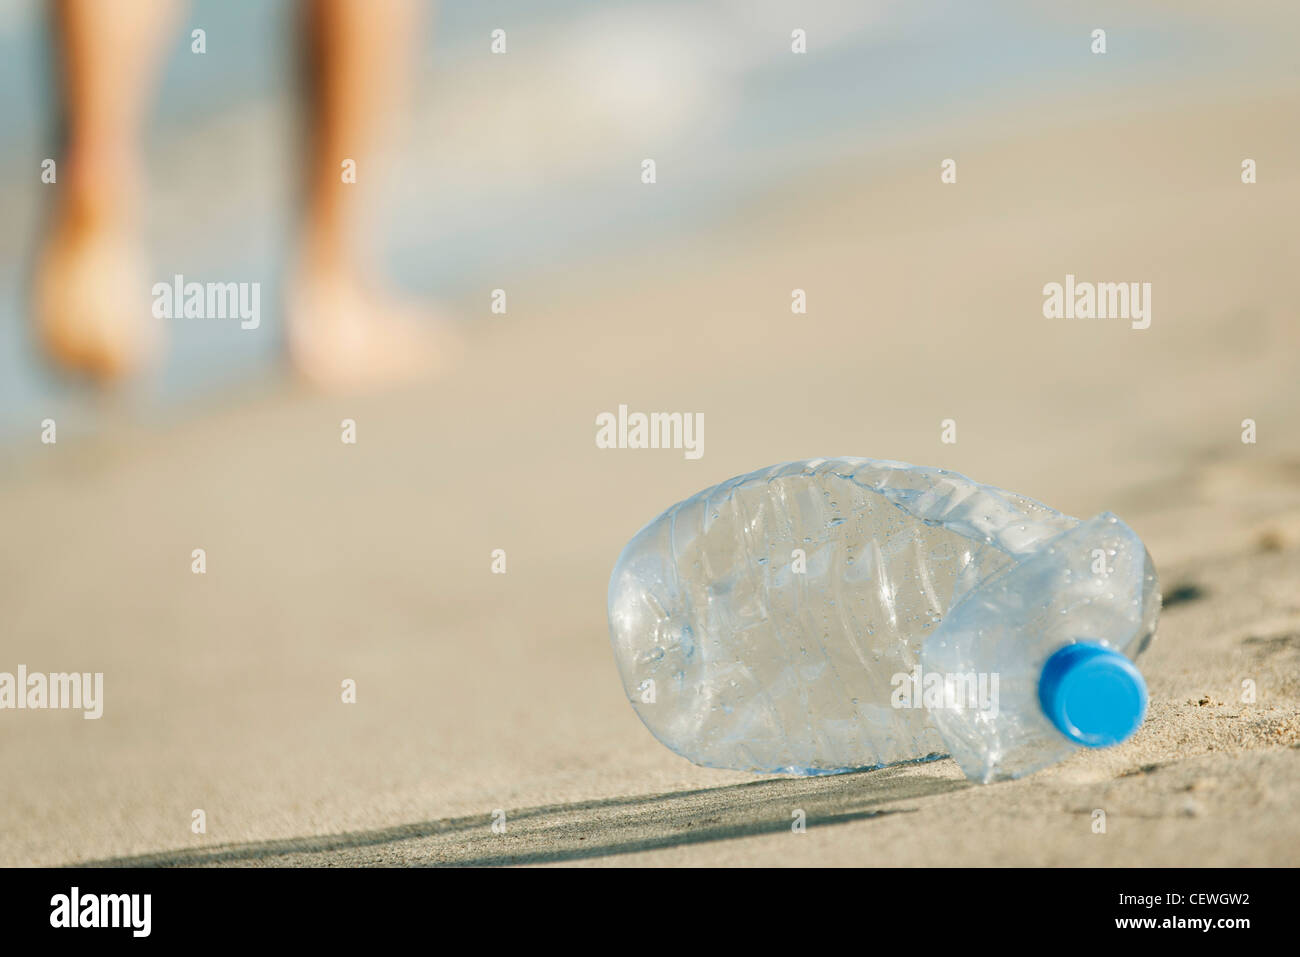 Abandoned plastic water bottle on beach - Stock Image